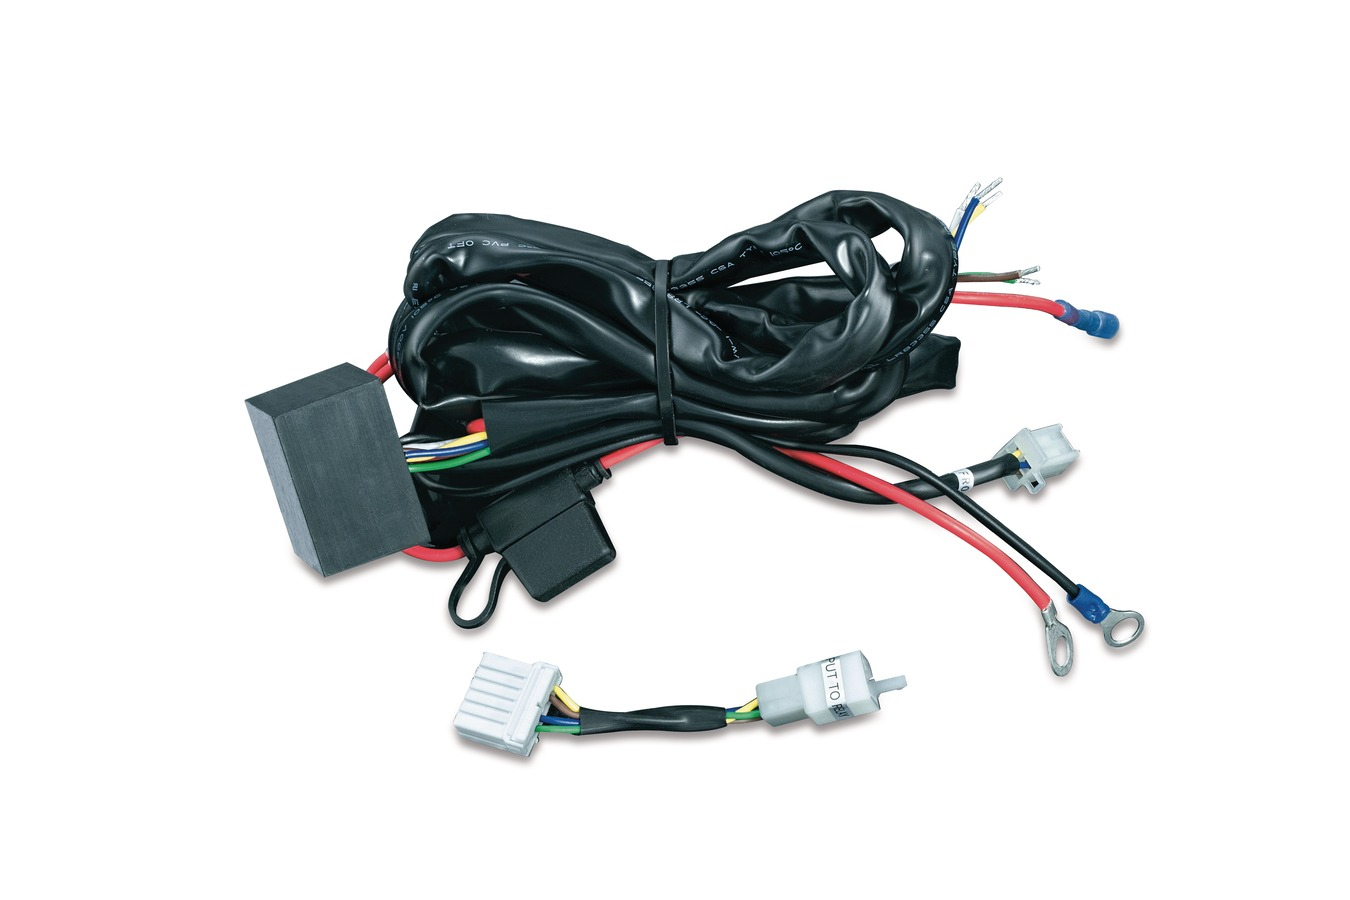 Trailer Wiring Harnesses | Trailer Hitches & Wiring | Touring - 5 Wire Motorcycle Trailer Wiring Diagram